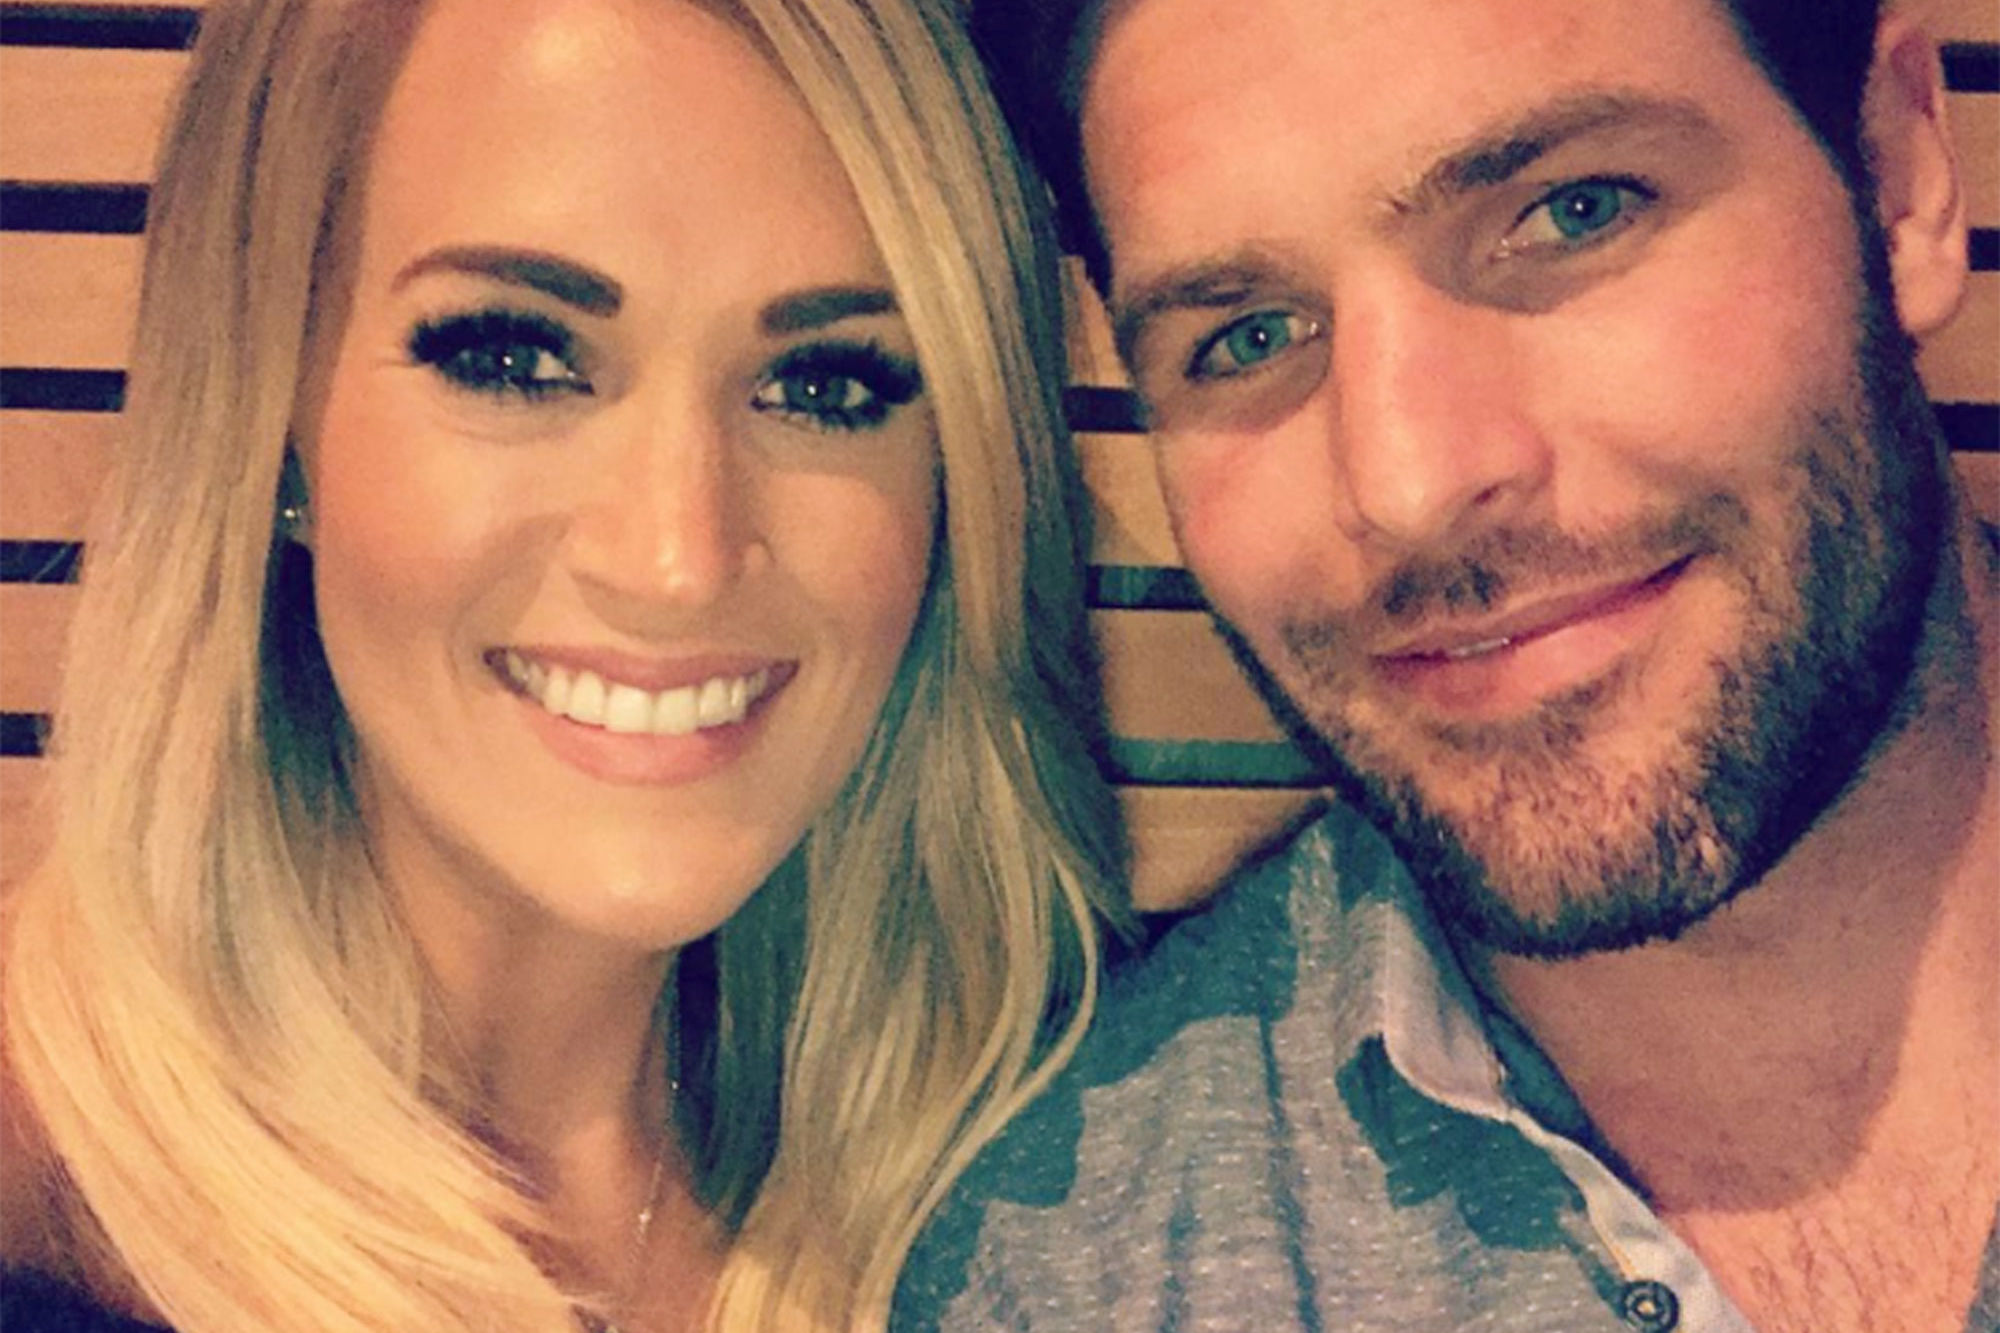 Carrie Underwood and Husband Mike Fisher Celebrate 7-Year Wedding Anniversary